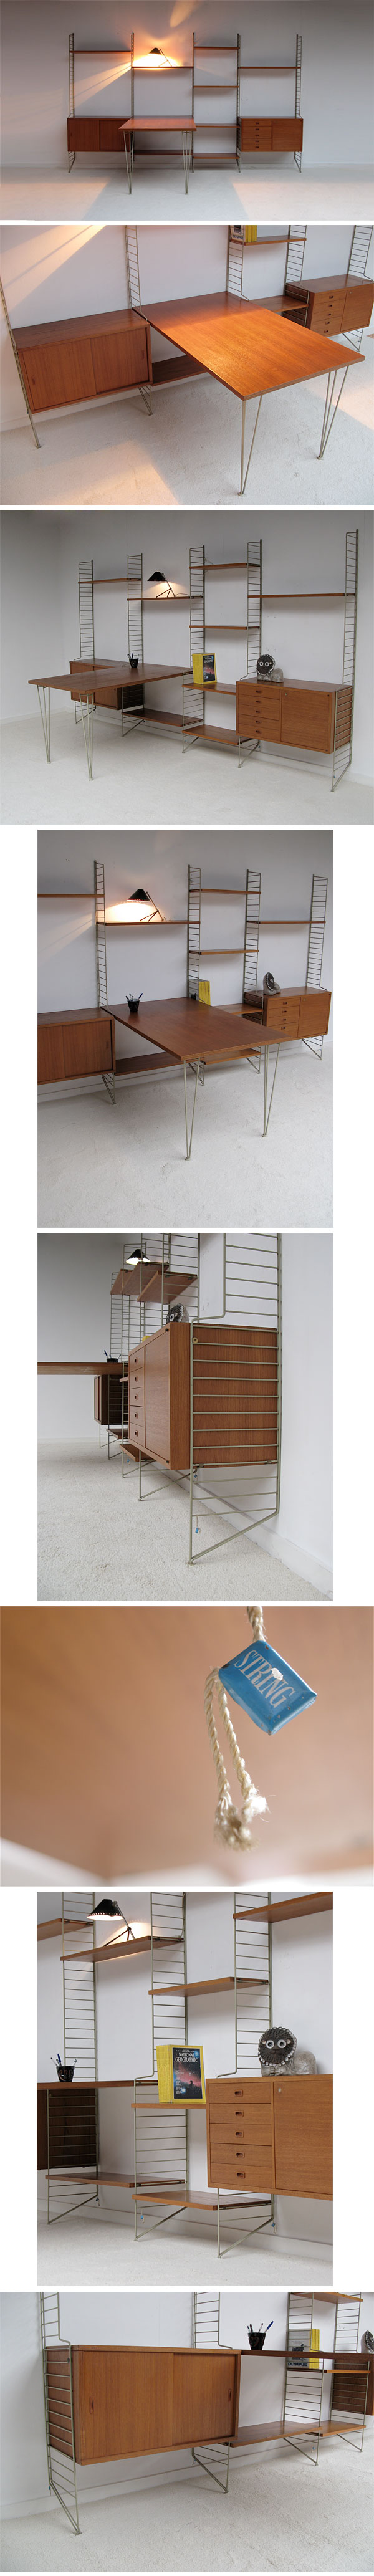 String, shelf, system, designed, Nisse, Strinning, dated, modernist